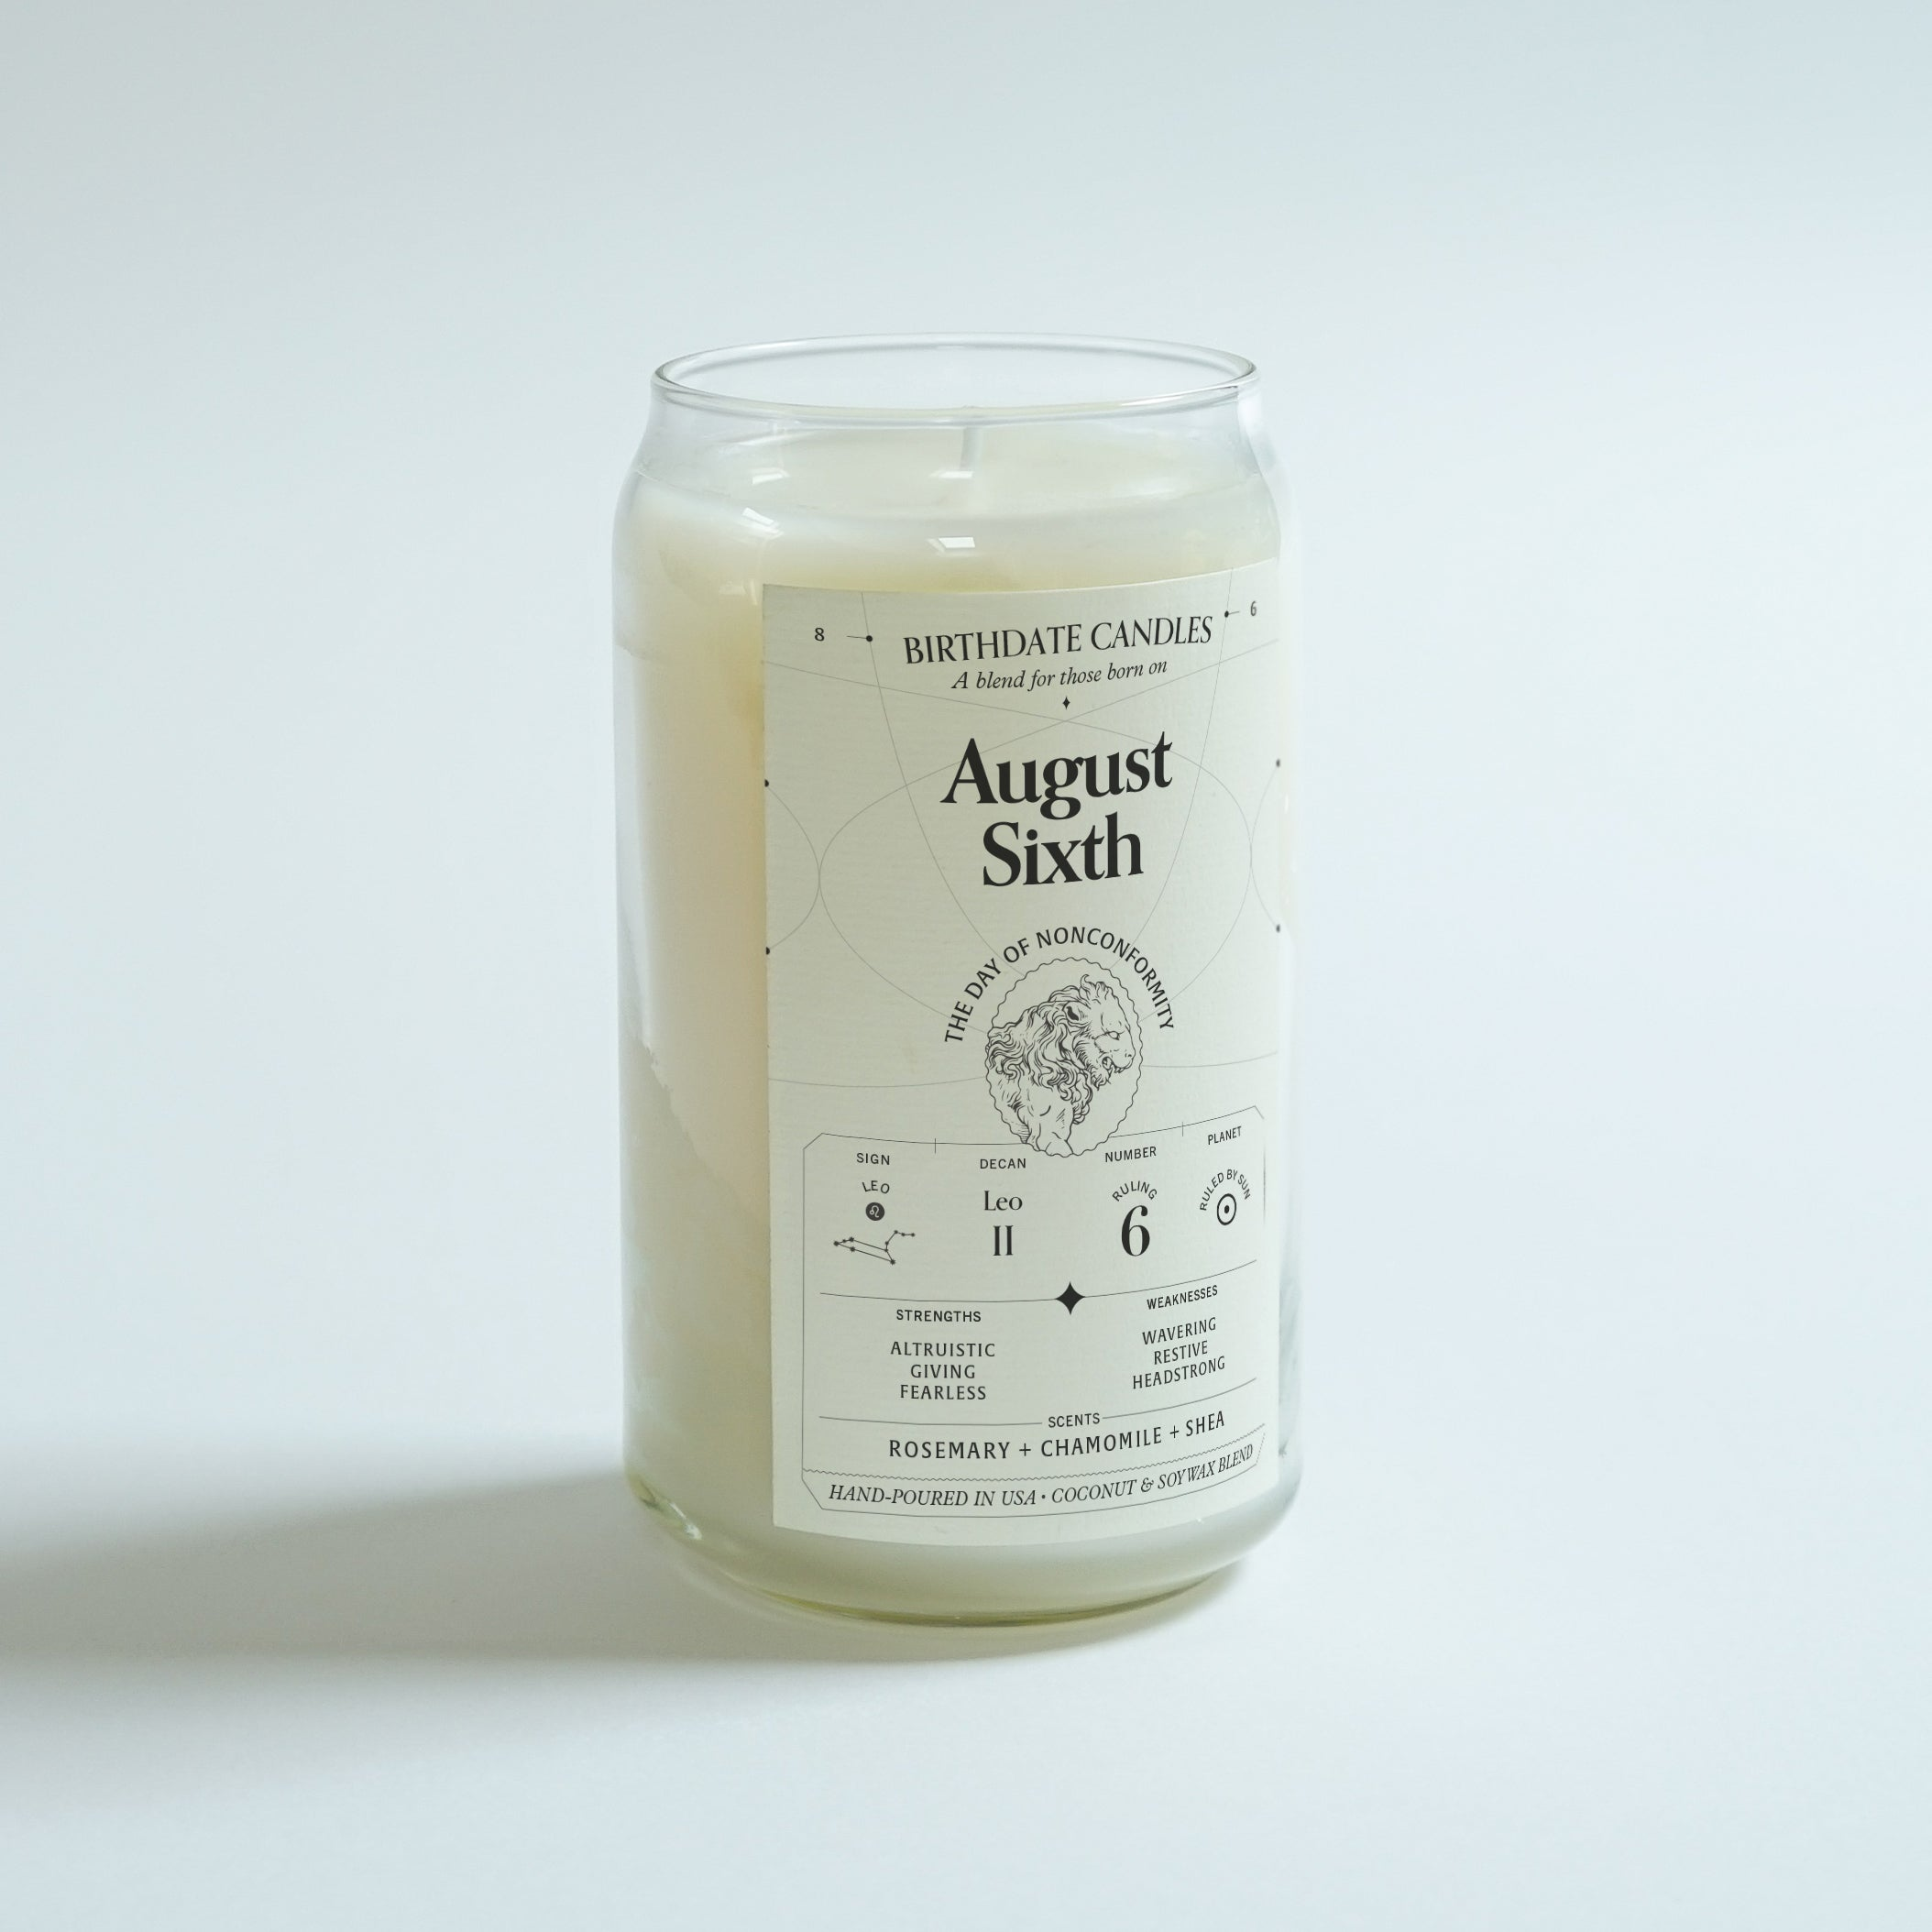 The August Sixth Candle